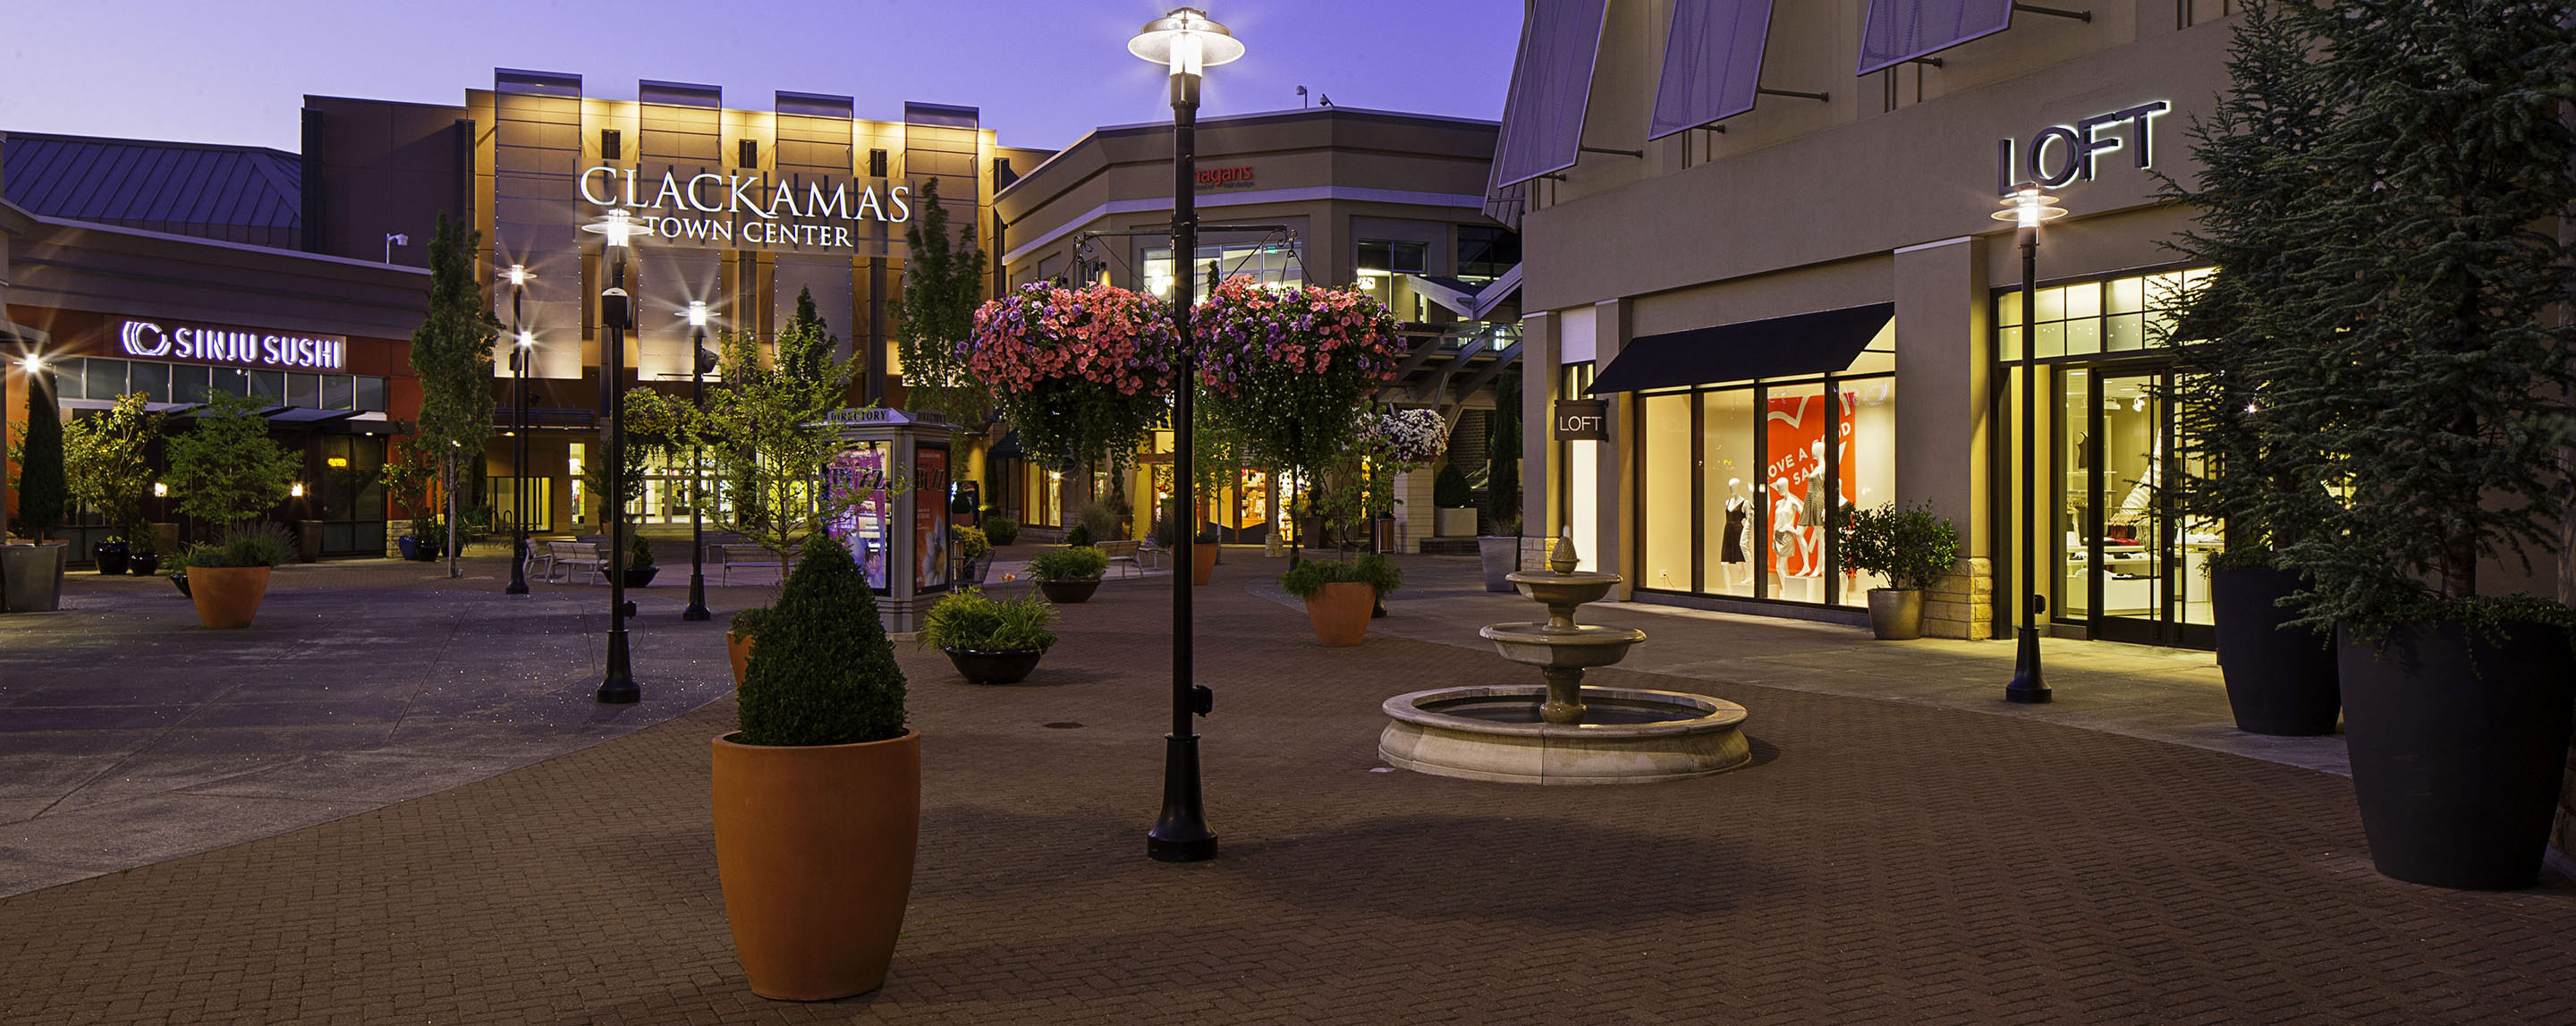 Outside at night, the common area leading into Clackamas Town Center is filled with fountains, flowers, potted plants, and light posts.